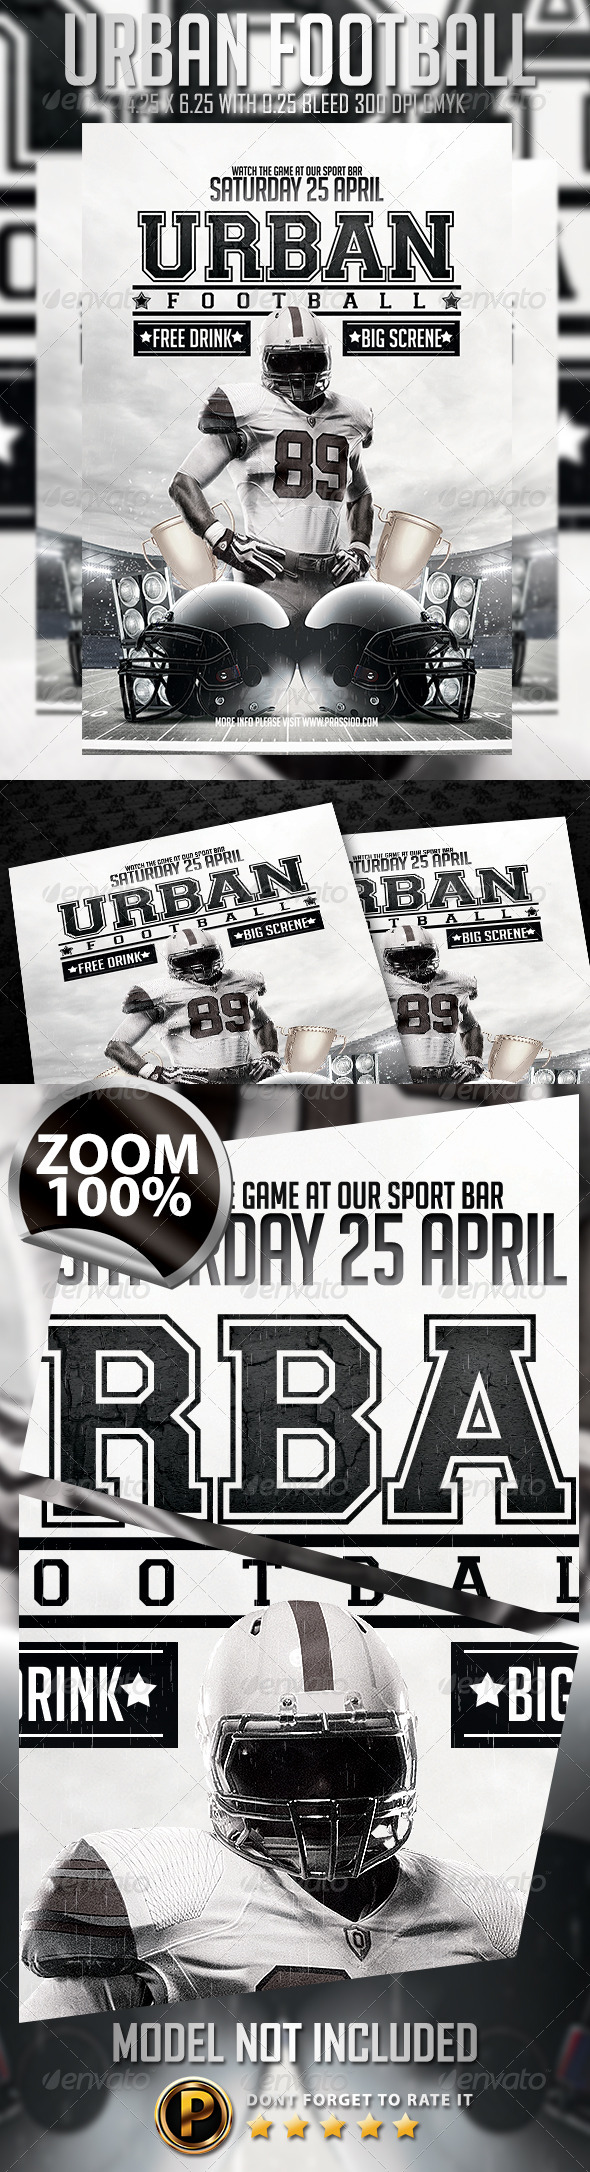 Urban Football Flyer Template - Sports Events